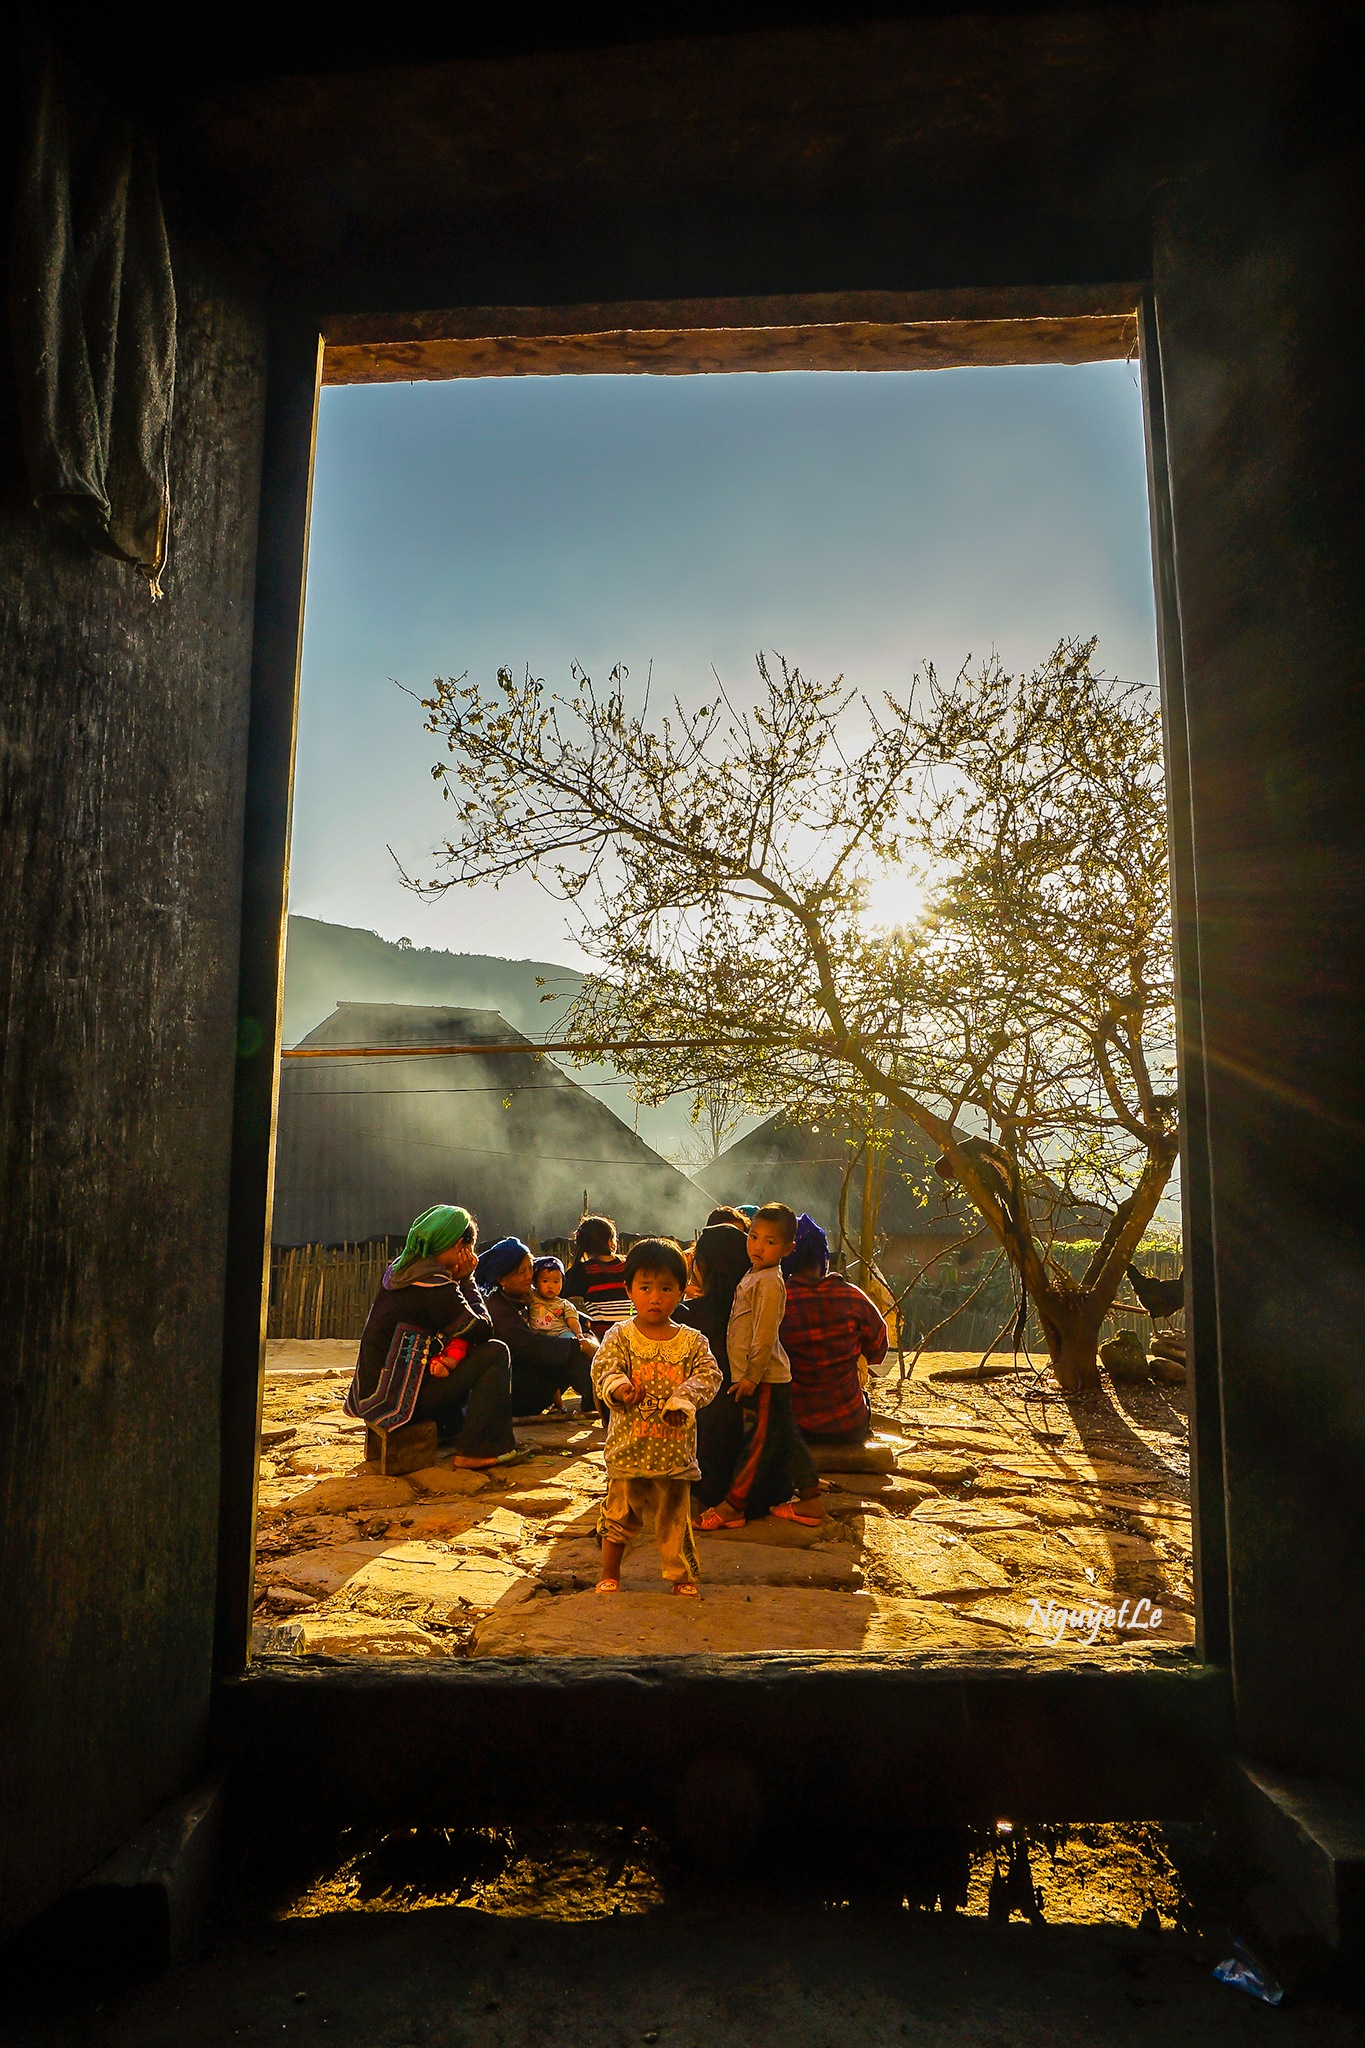 Peace life behind the door by Nguyet Le